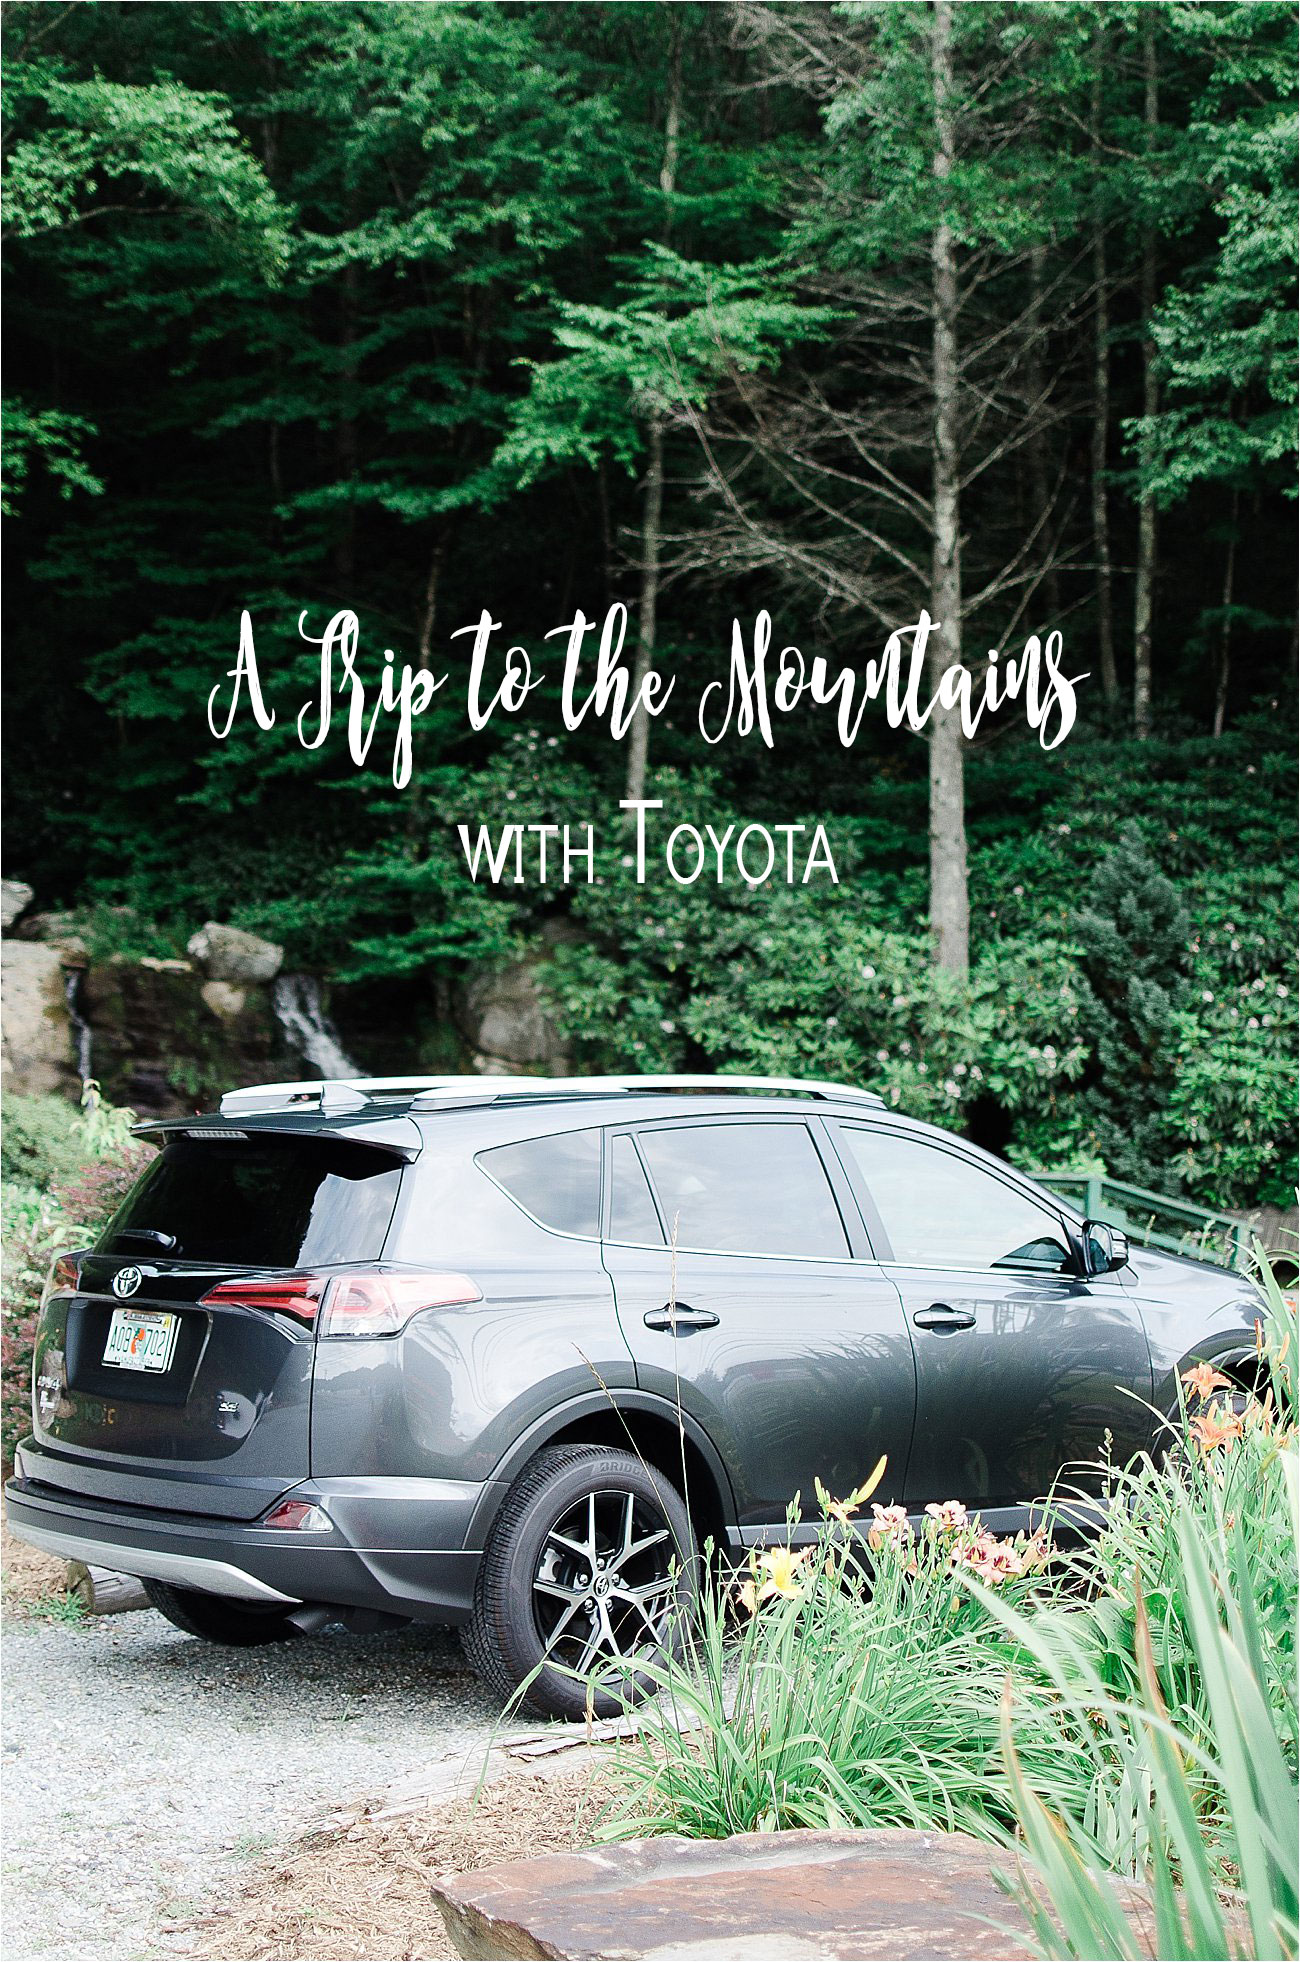 A Trip to the Mountains with Toyota